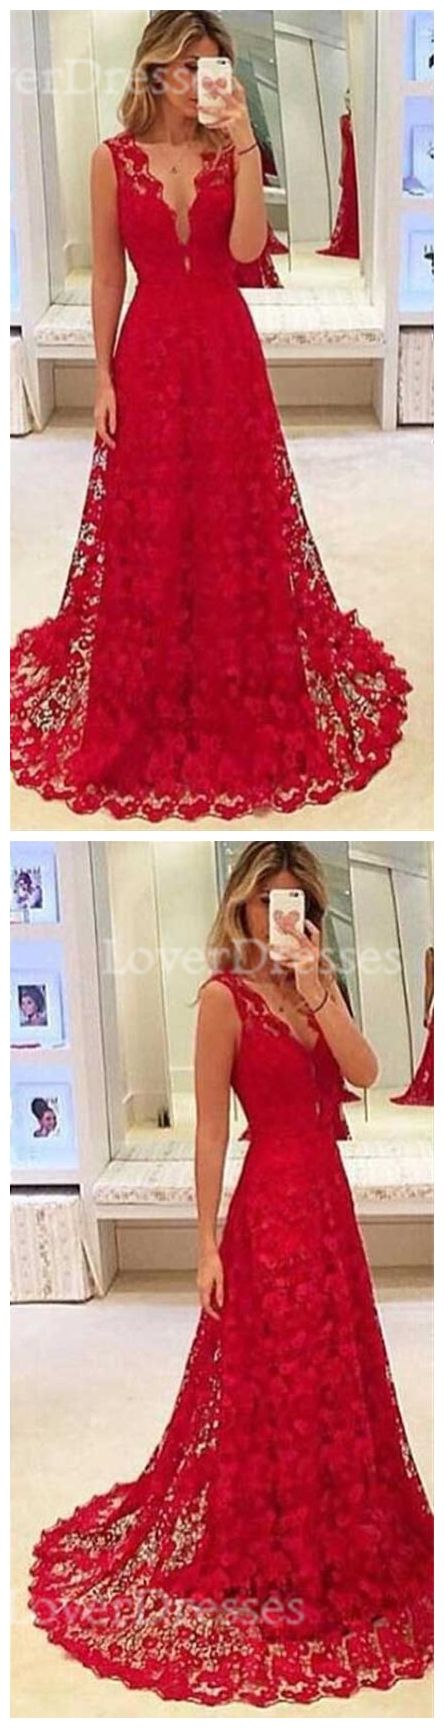 Red lace prom dresses, A line prom dresses, 2017 long prom dresses, prom dresses cheap, dresses for prom, 17132